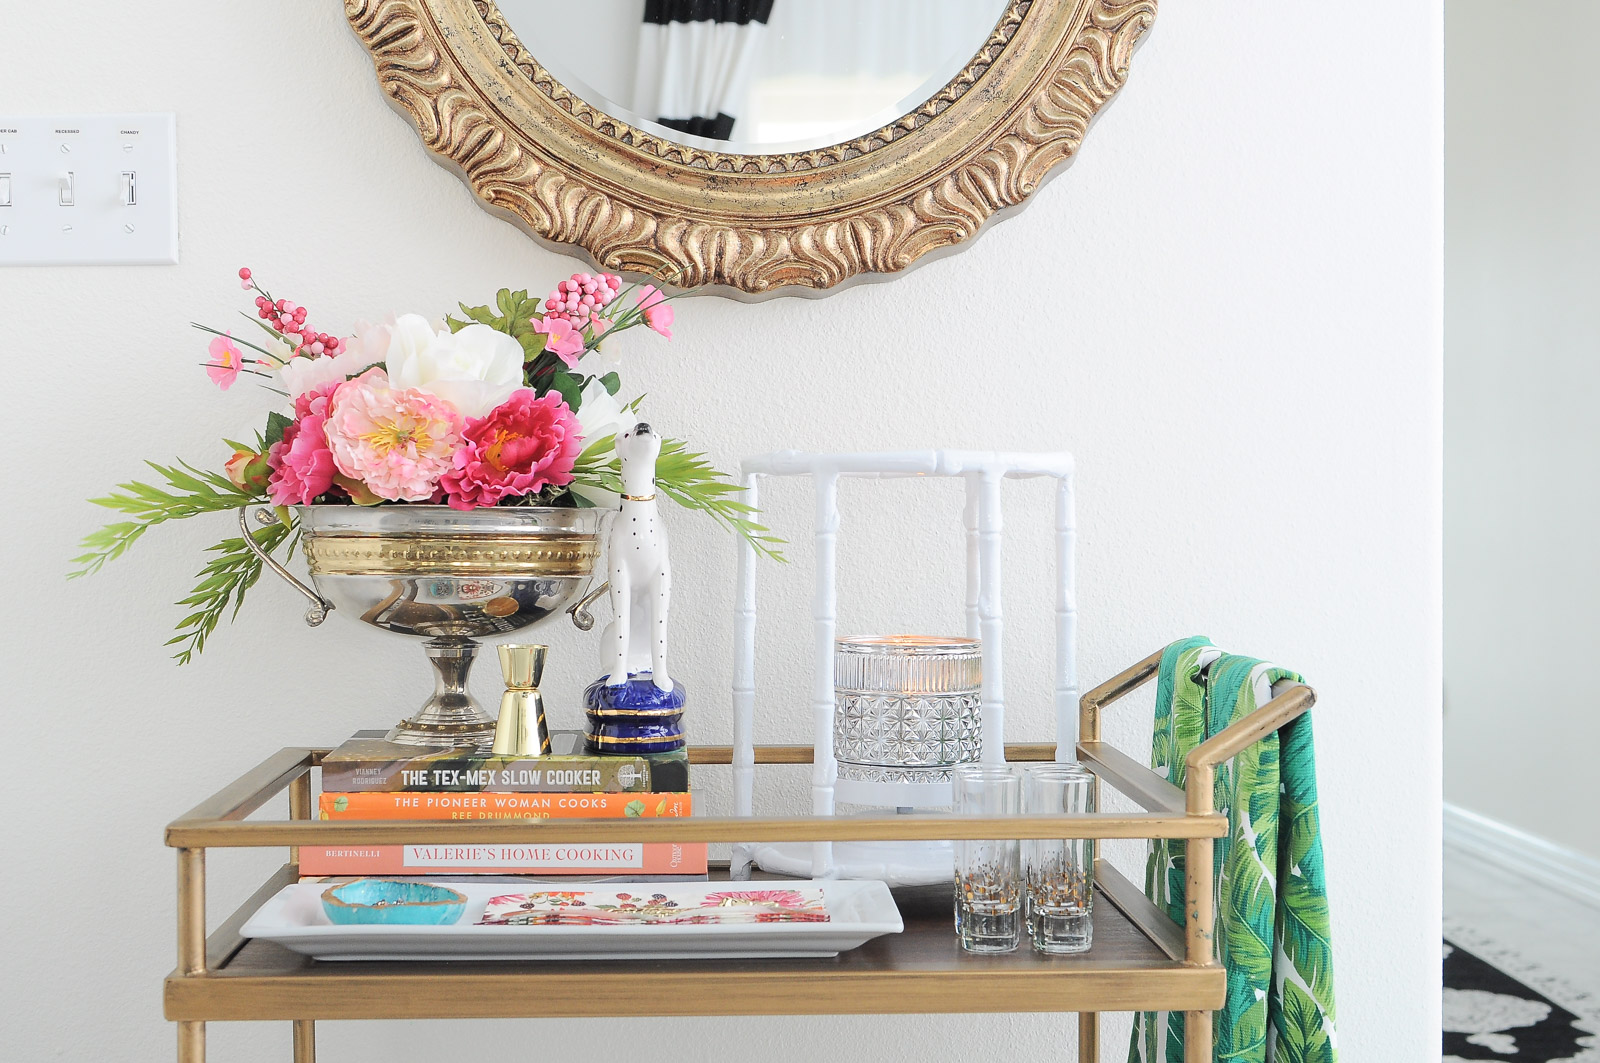 Spring bar cart decorating ideas using florals, gold accents, and chinioserie inspired elements.